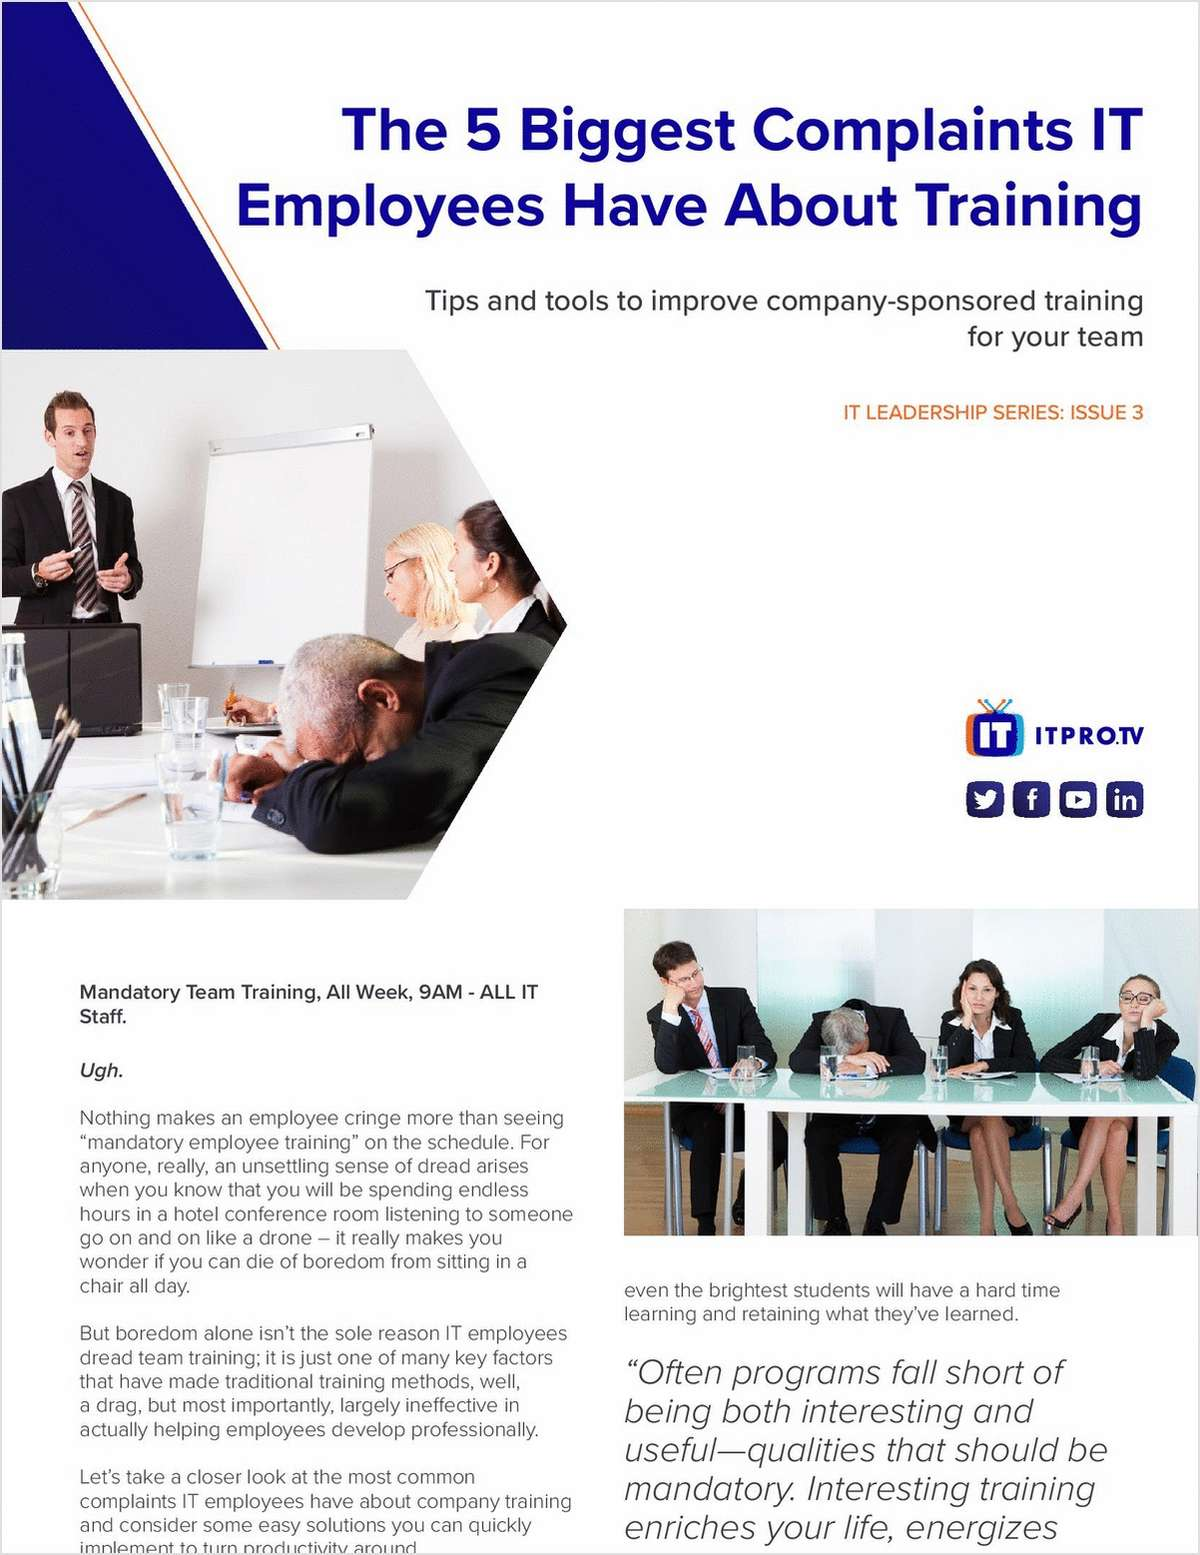 will changing training methods improve staff One of the key objectives that should feature in any business and organizational plan is motivation of one's employees it goes without saying that a motivated workforce is a more creative and productive one innovation is necessary to produce quality work only driven employees would put in the effort to find better methods to deliver quality.